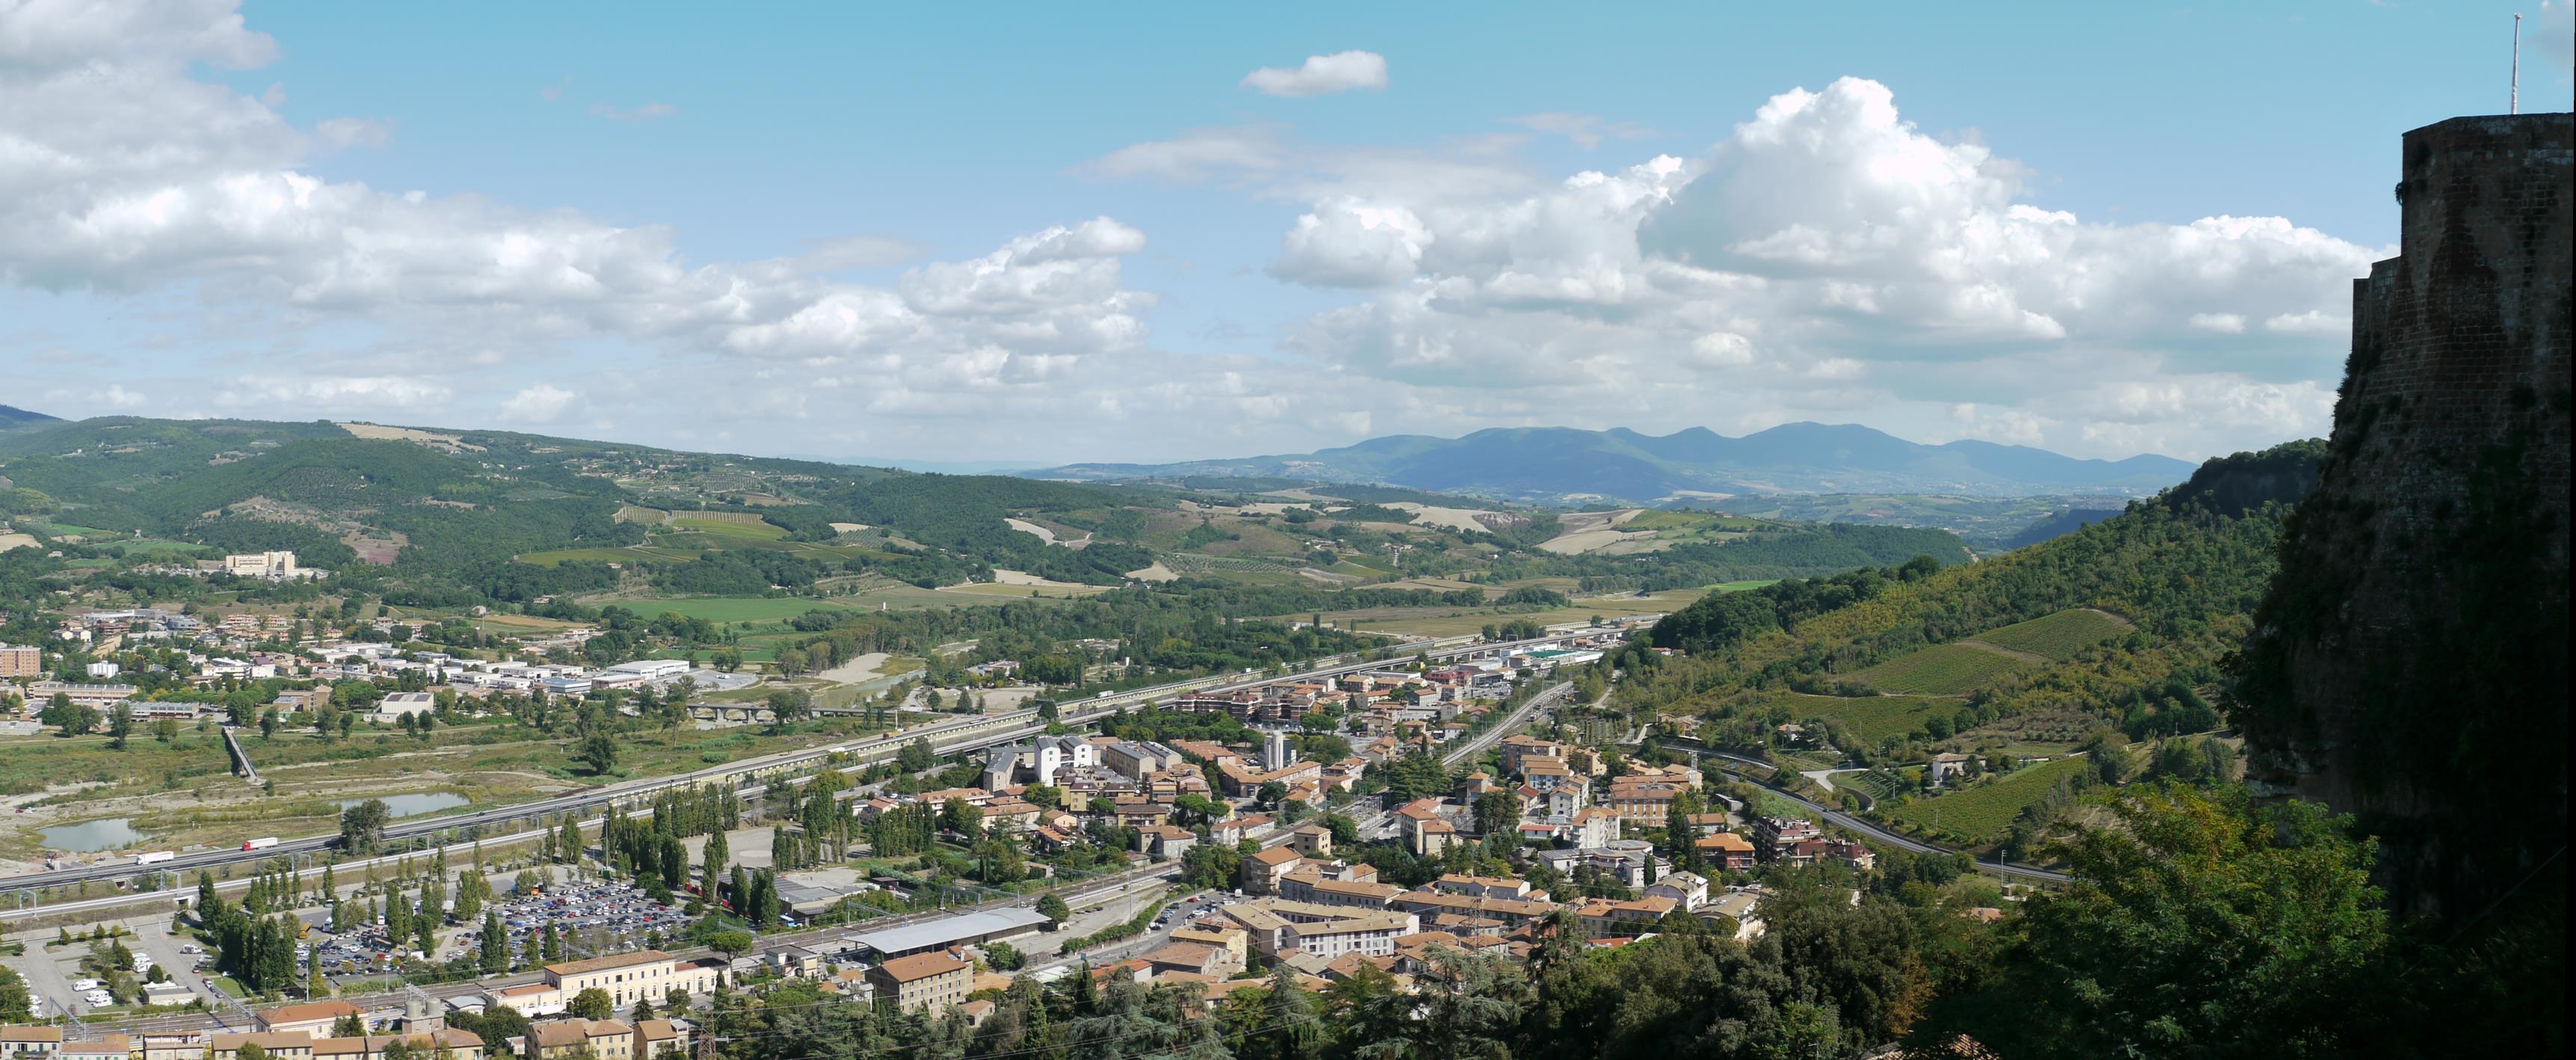 A view over 'new' Orvieto, from hilltop Orvieto, which sits on top of a large volcanic plug